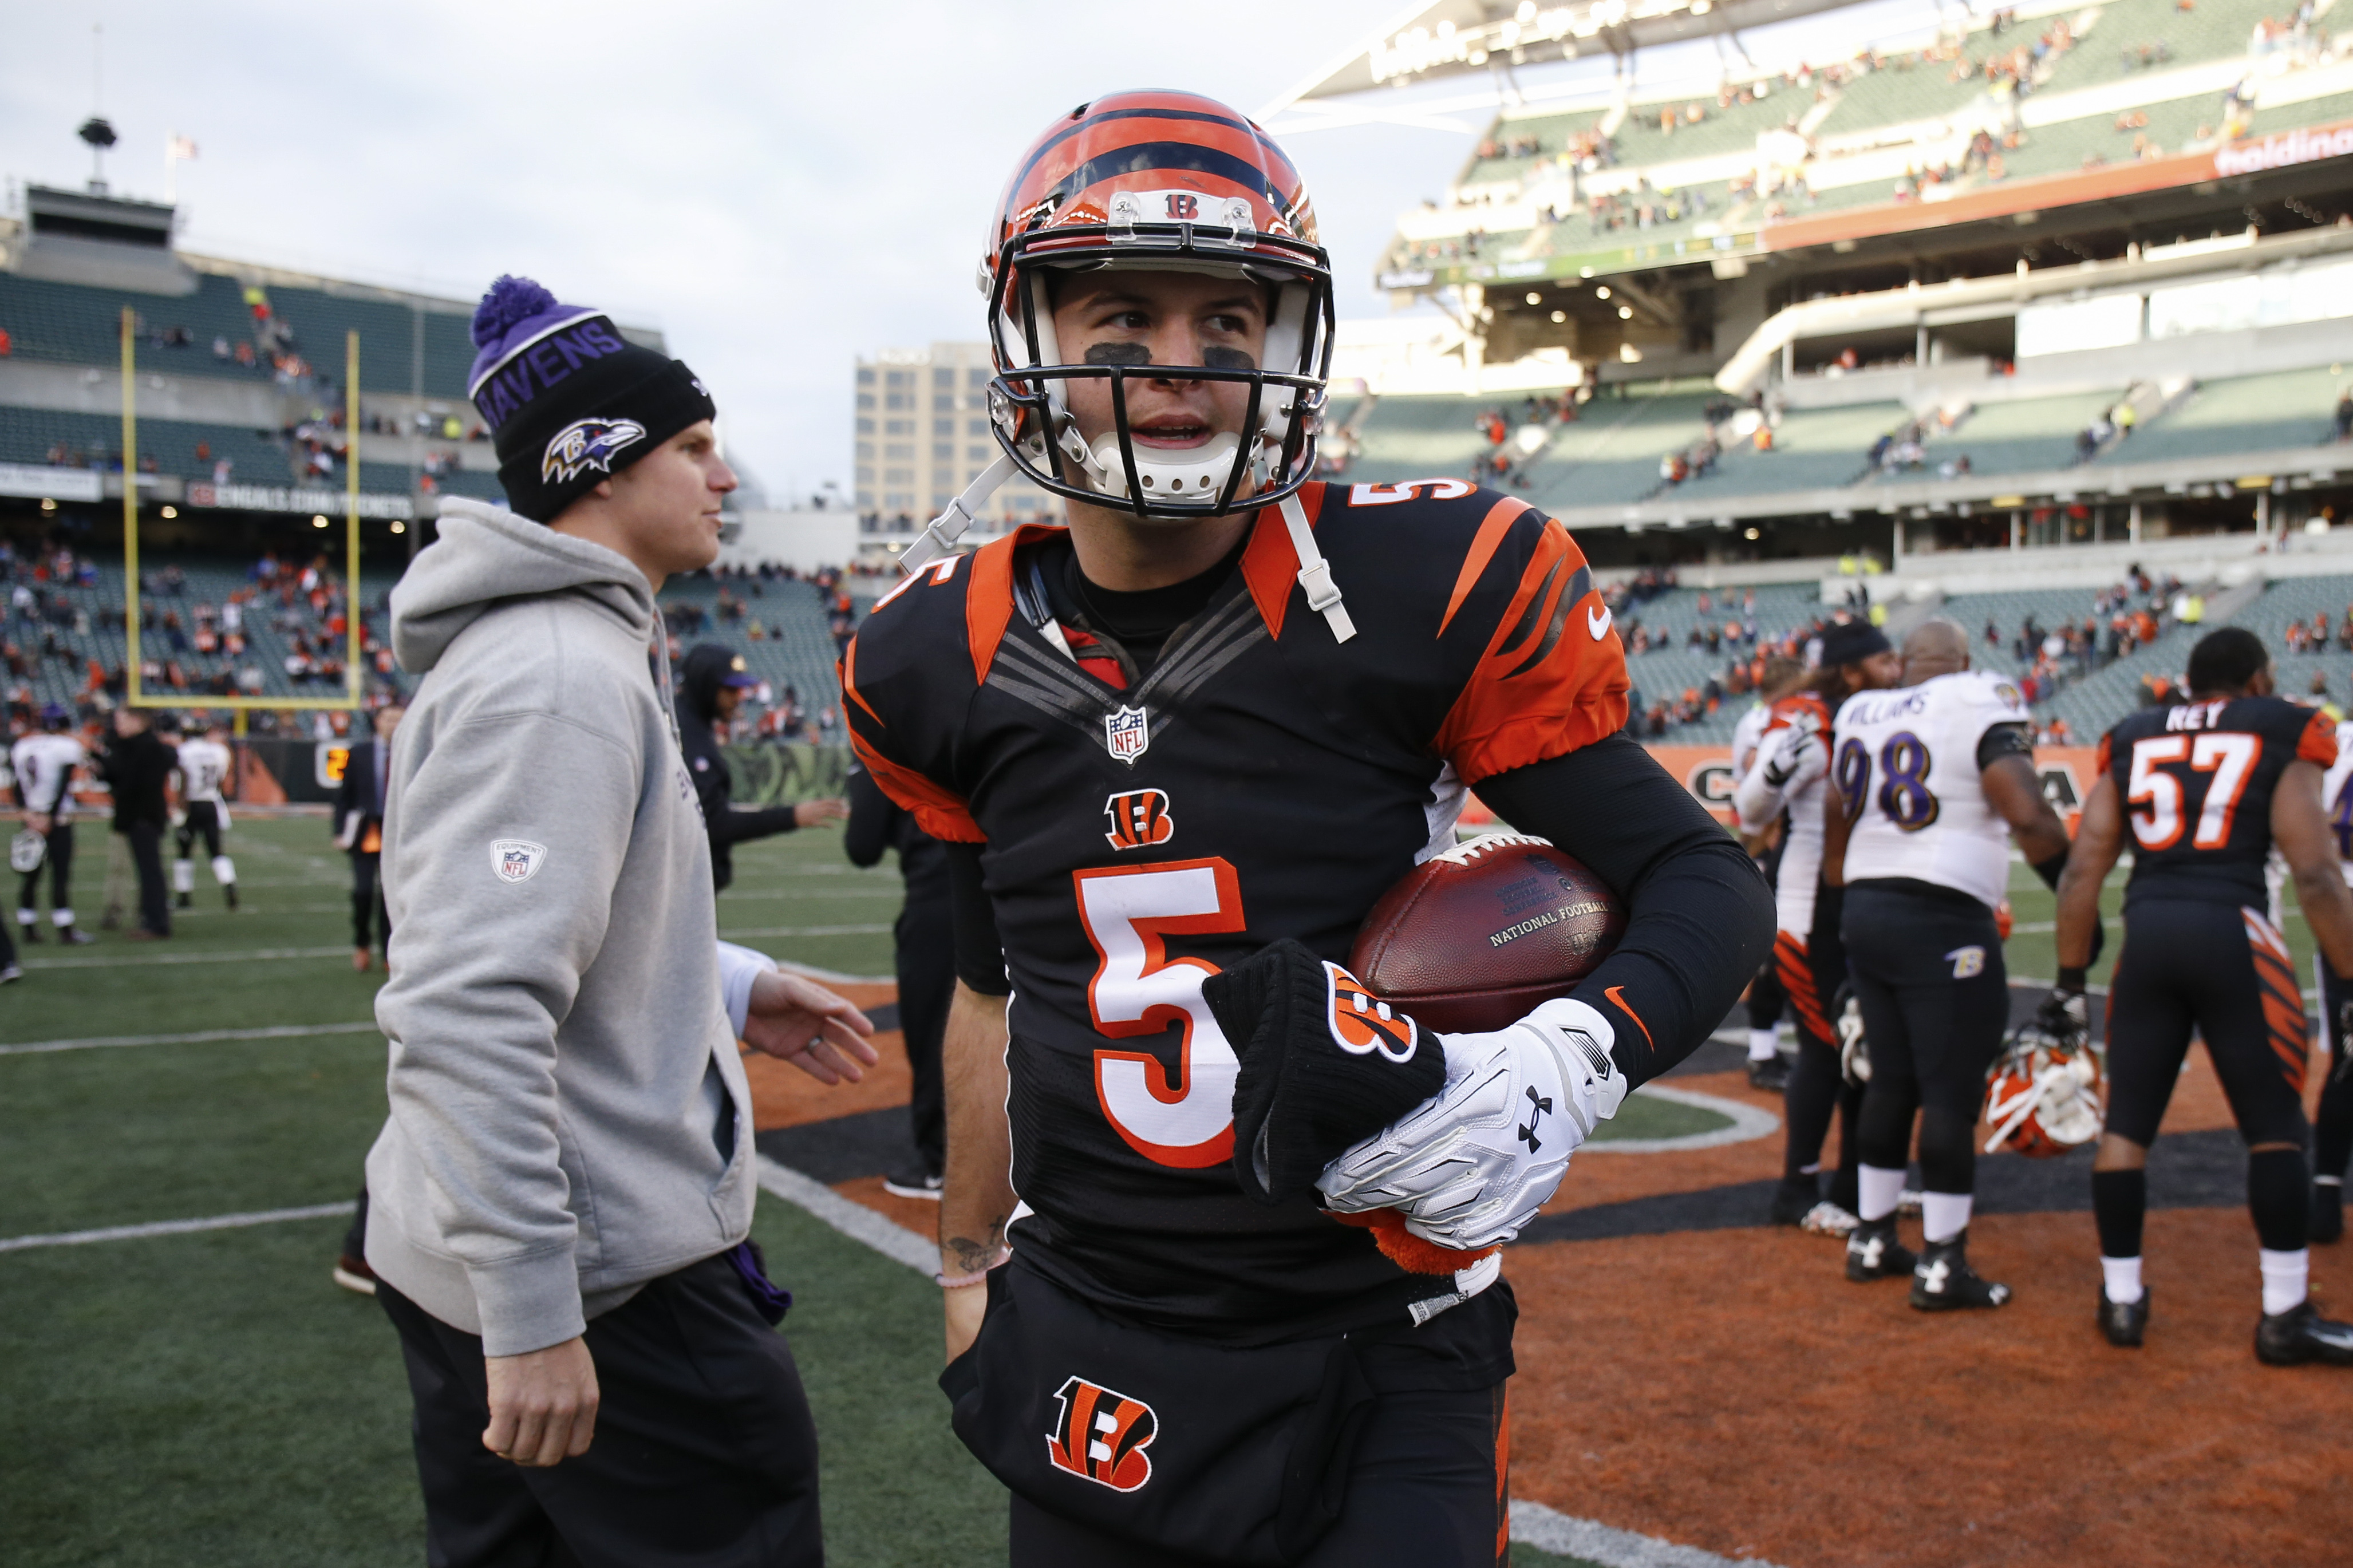 Cincinnati Bengals quarterback AJ McCarron (5) walks the field after an NFL football game against the Baltimore Ravens, Sunday, Jan. 3, 2016, in Cincinnati. Cincinnati won 24-16. (AP Photo/Gary Landers)